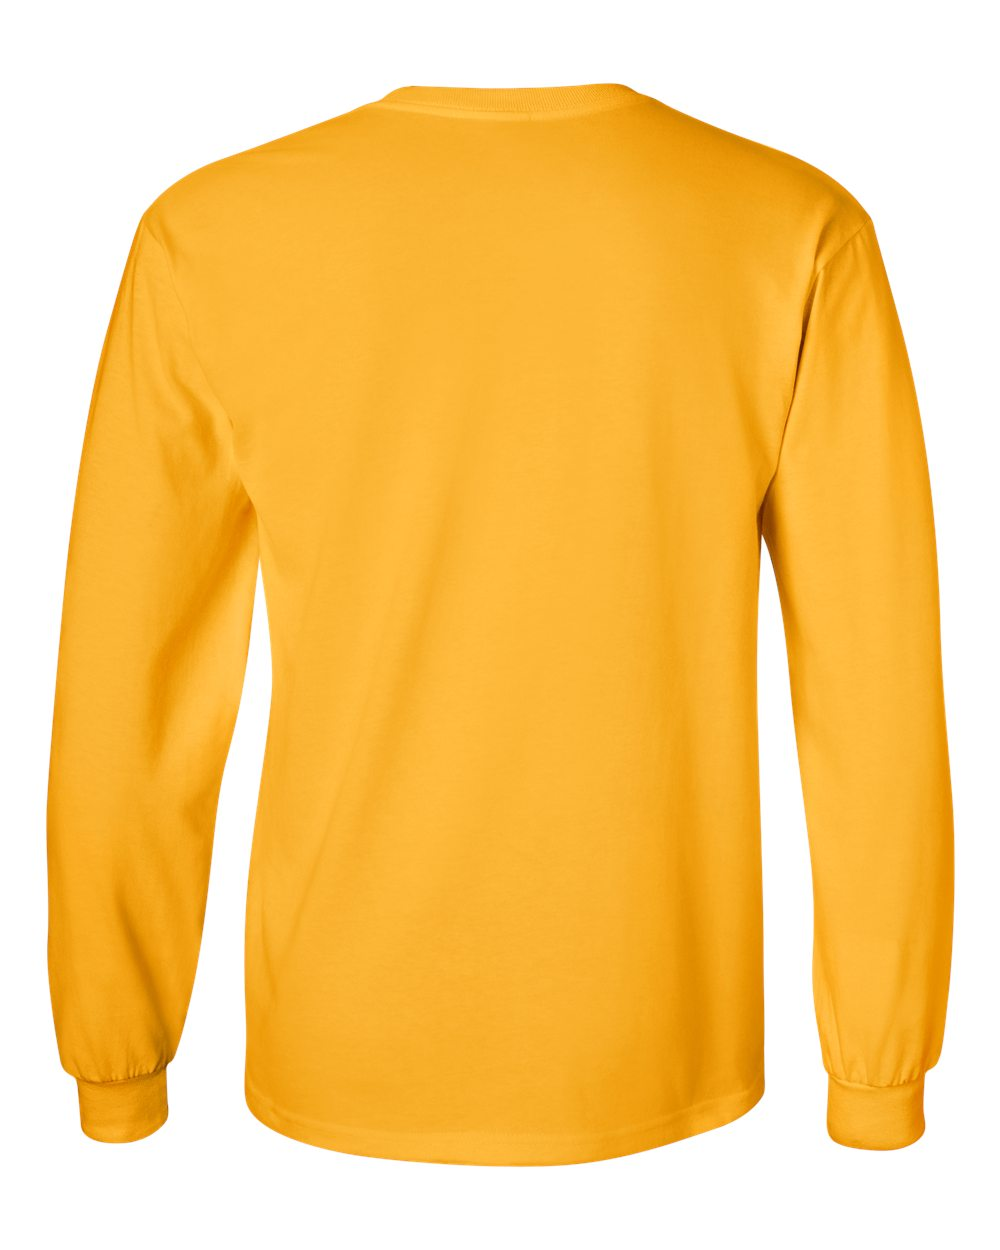 Gildan-Men-039-s-Ultra-Cotton-6-oz-Long-Sleeve-T-Shirt-G240-S-5XL thumbnail 36